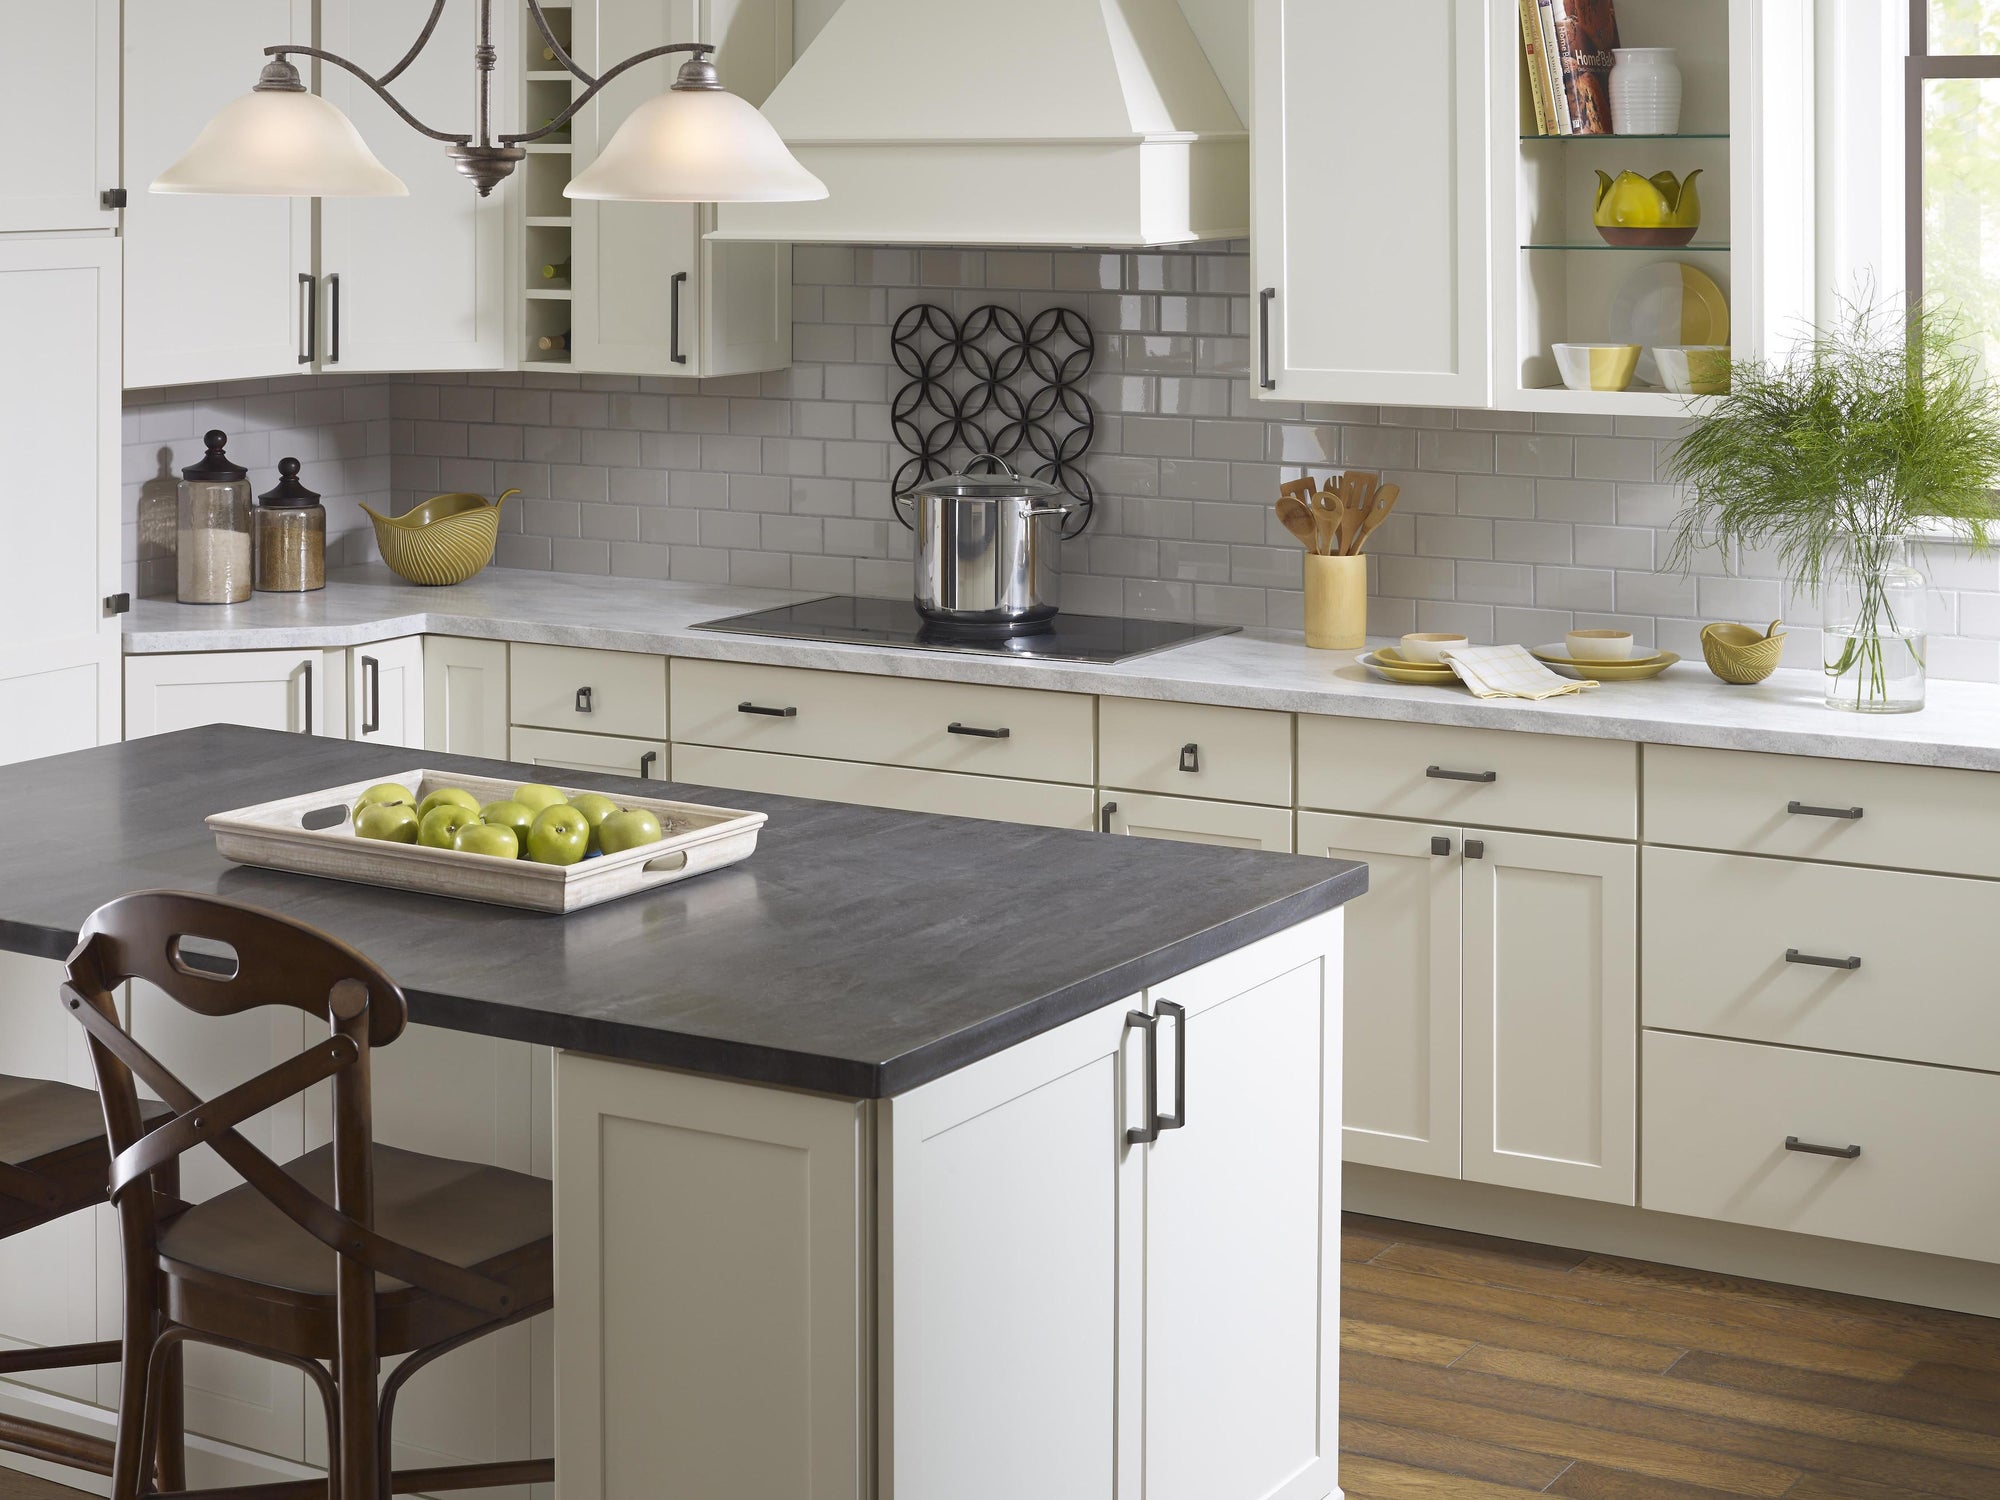 Miraculous Knobdepot Buy Discount Kitchen Cabinet And Bathroom Hardware Interior Design Ideas Ghosoteloinfo